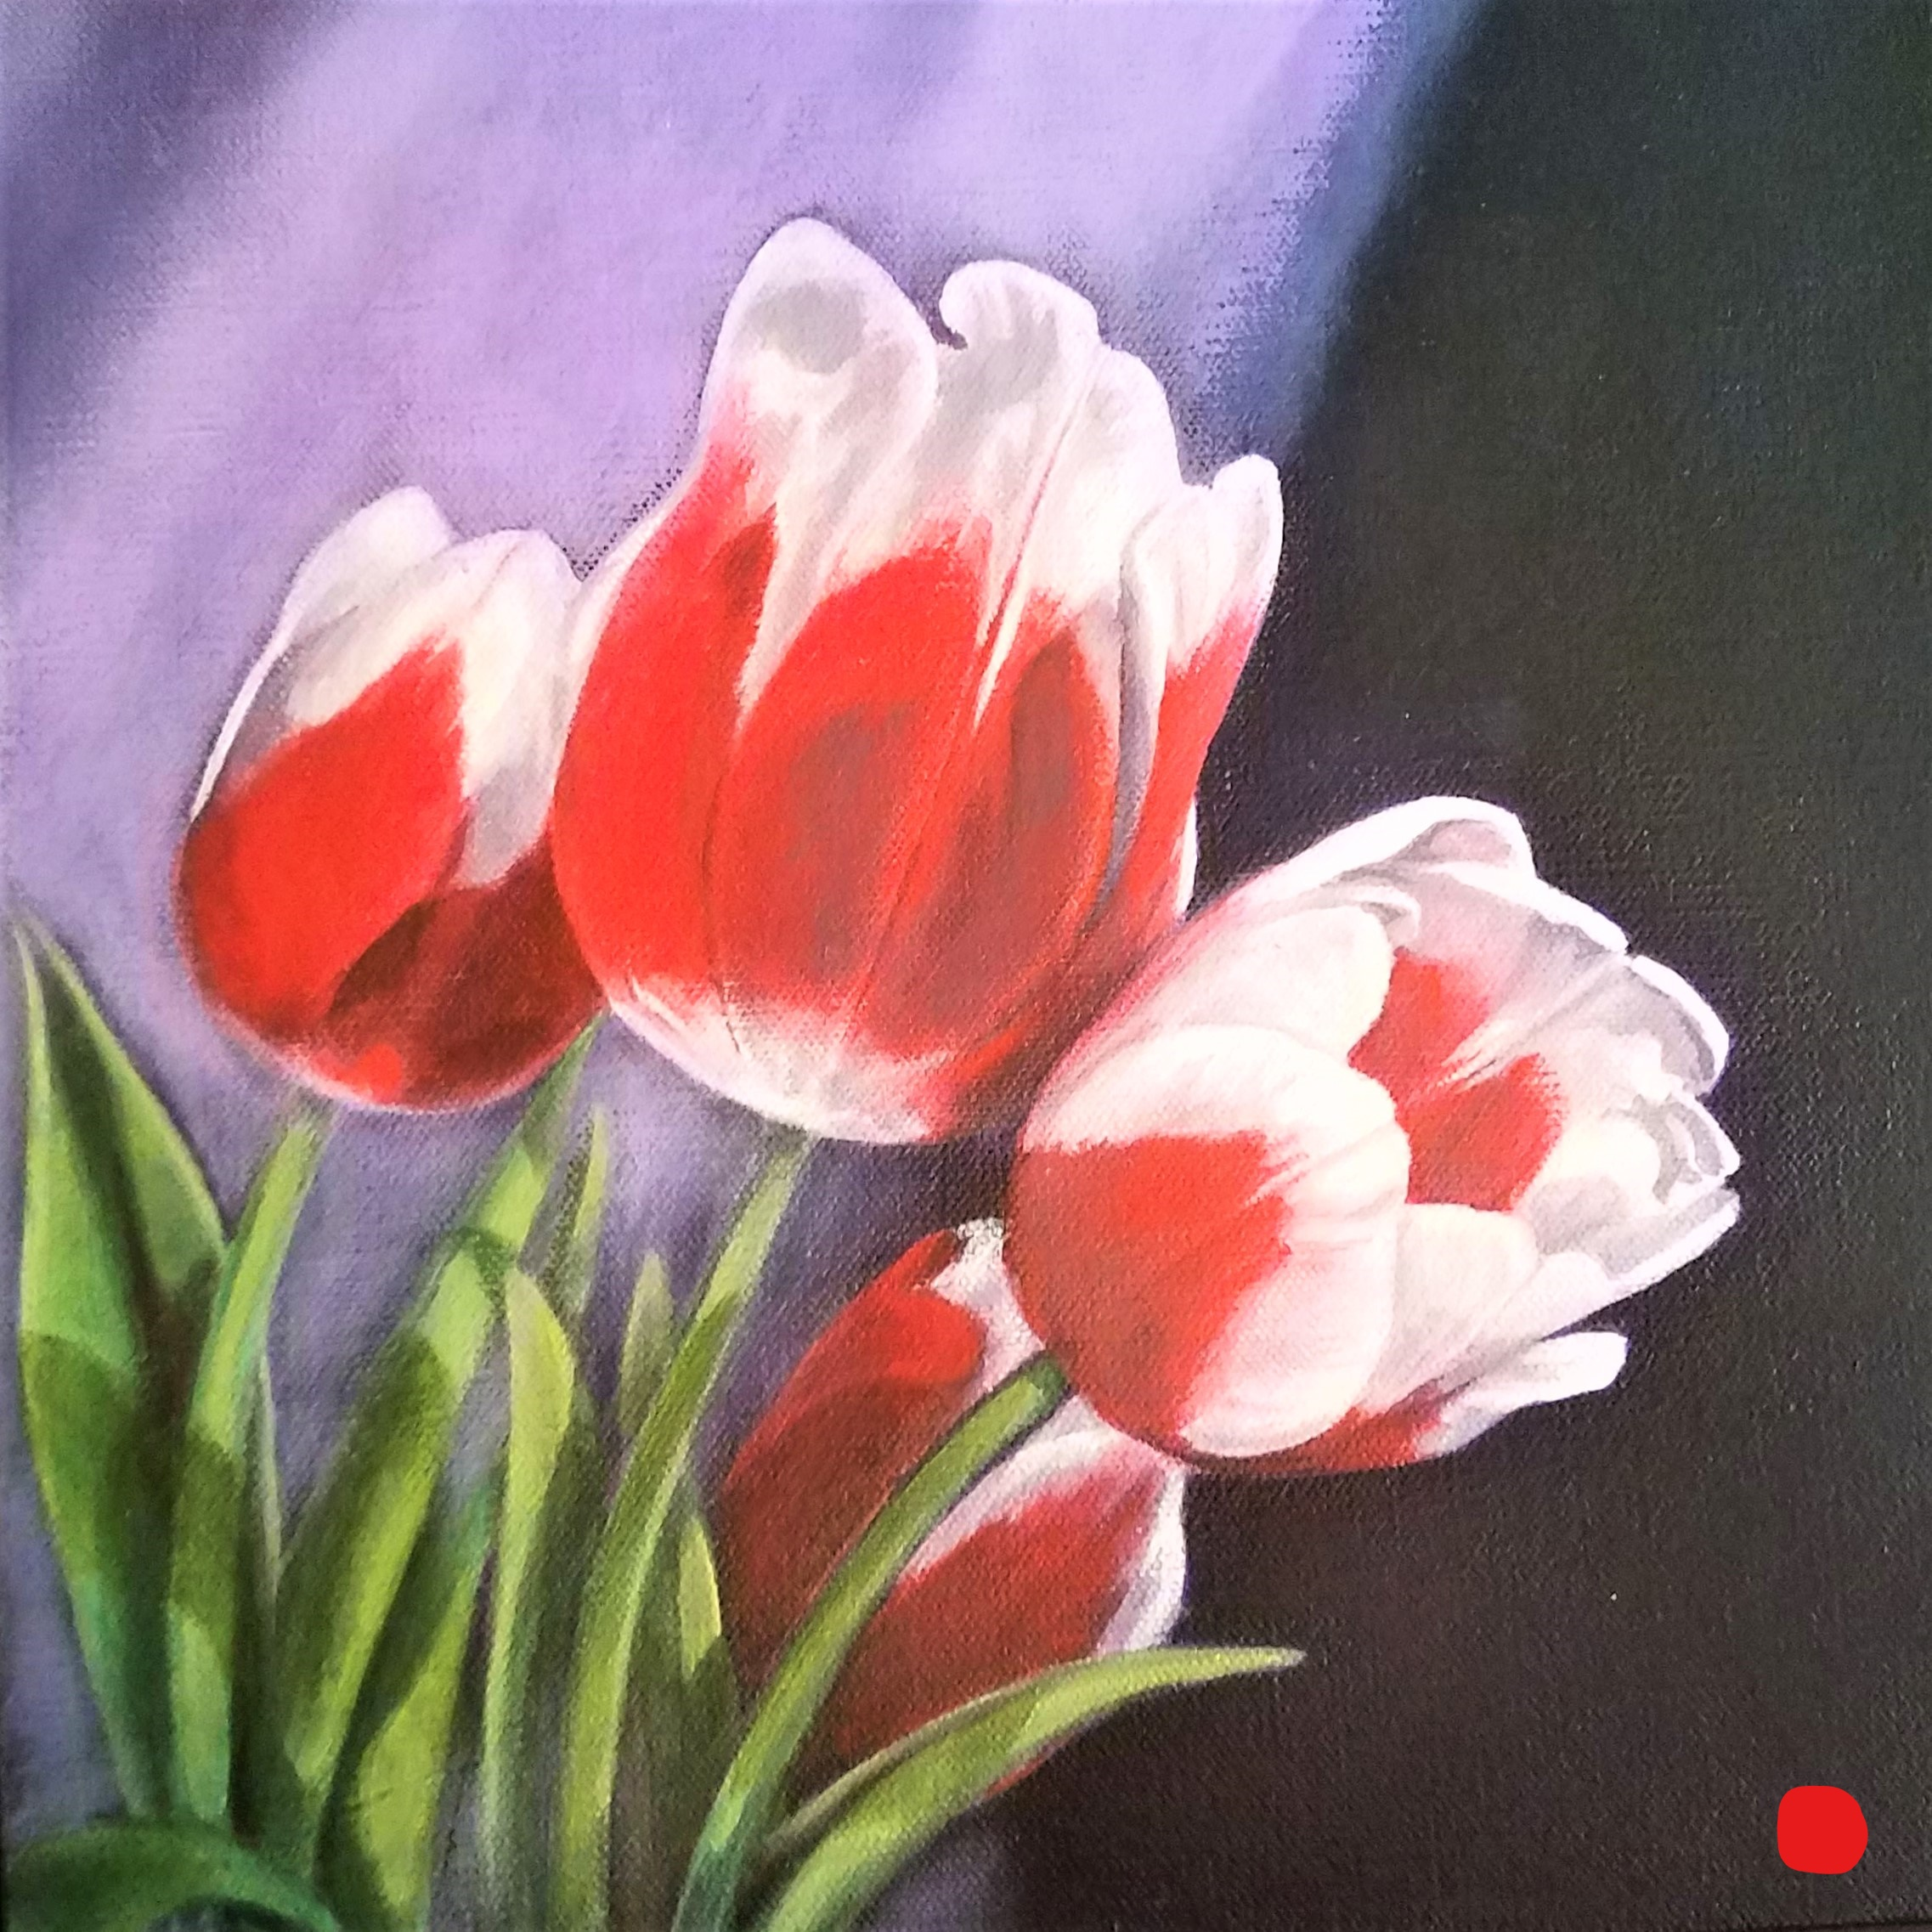 Red and White Tulips 2 of 2 Left_LI